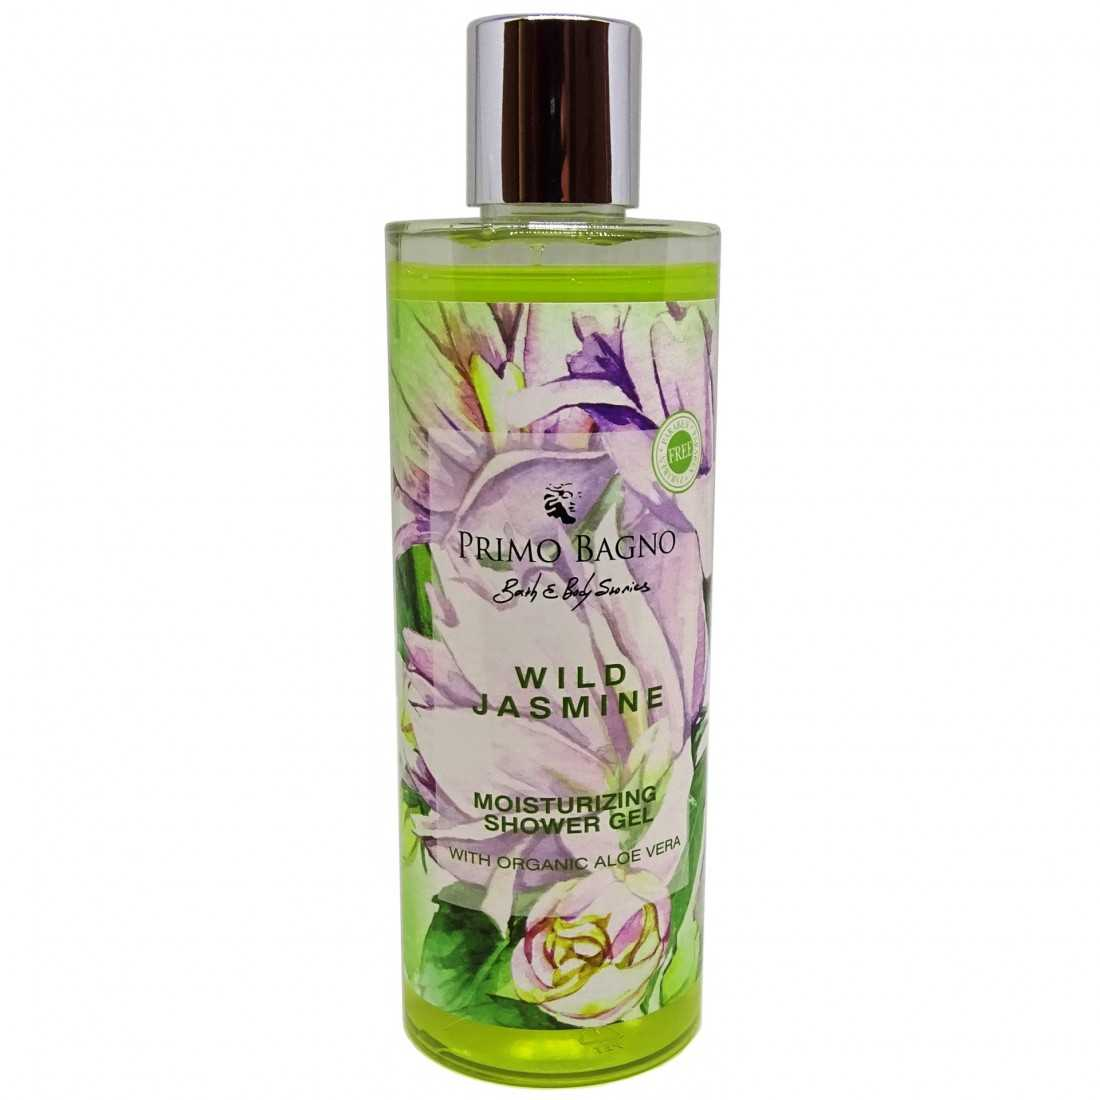 Primo Bagno - Moisturizing Shower gel Wild Jasmine